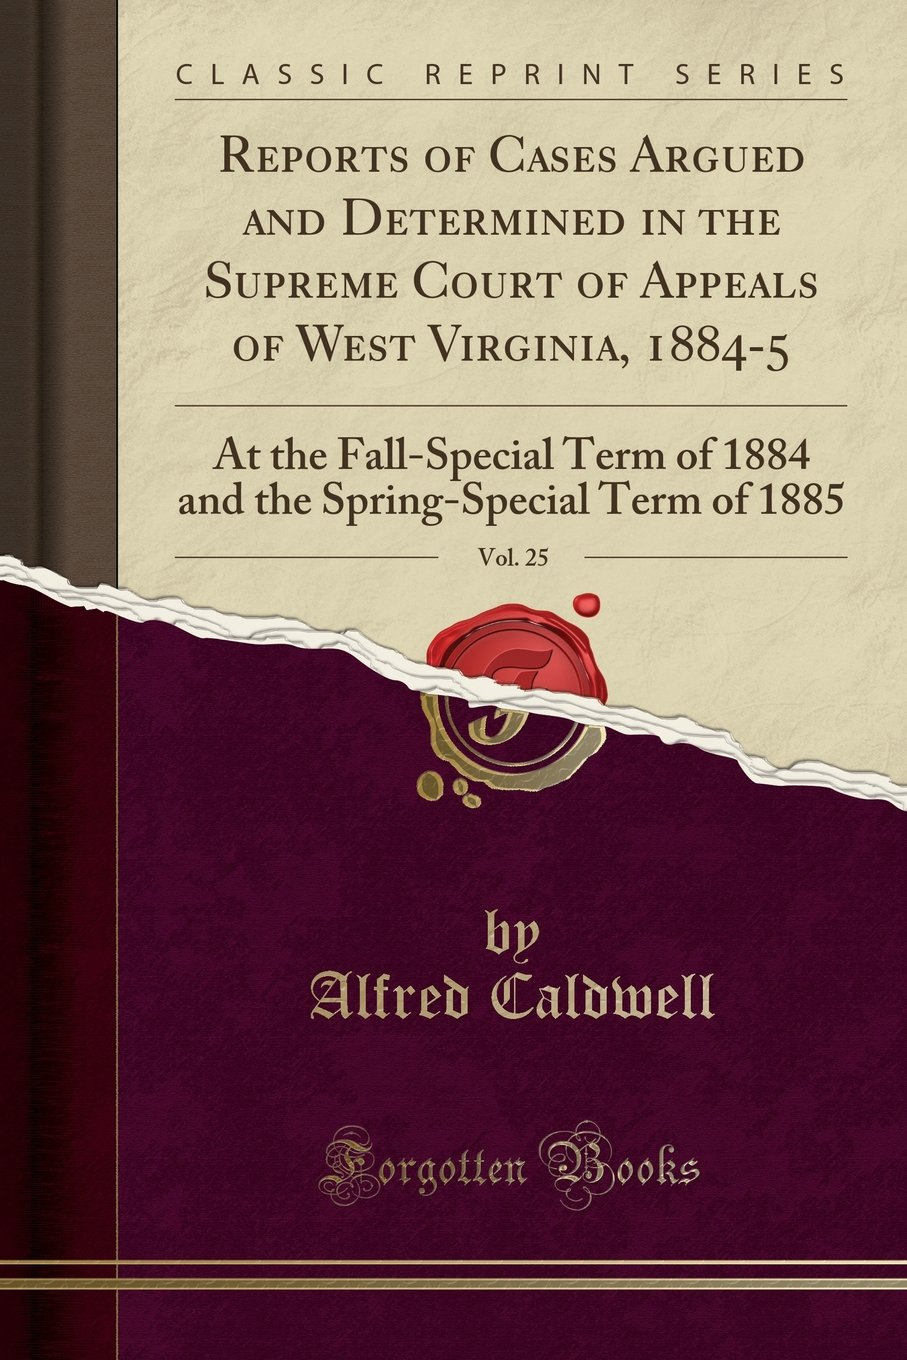 Read Online Reports of Cases Argued and Determined in the Supreme Court of Appeals of West Virginia, 1884-5, Vol. 25: At the Fall-Special Term of 1884 and the Spring-Special Term of 1885 (Classic Reprint) pdf epub